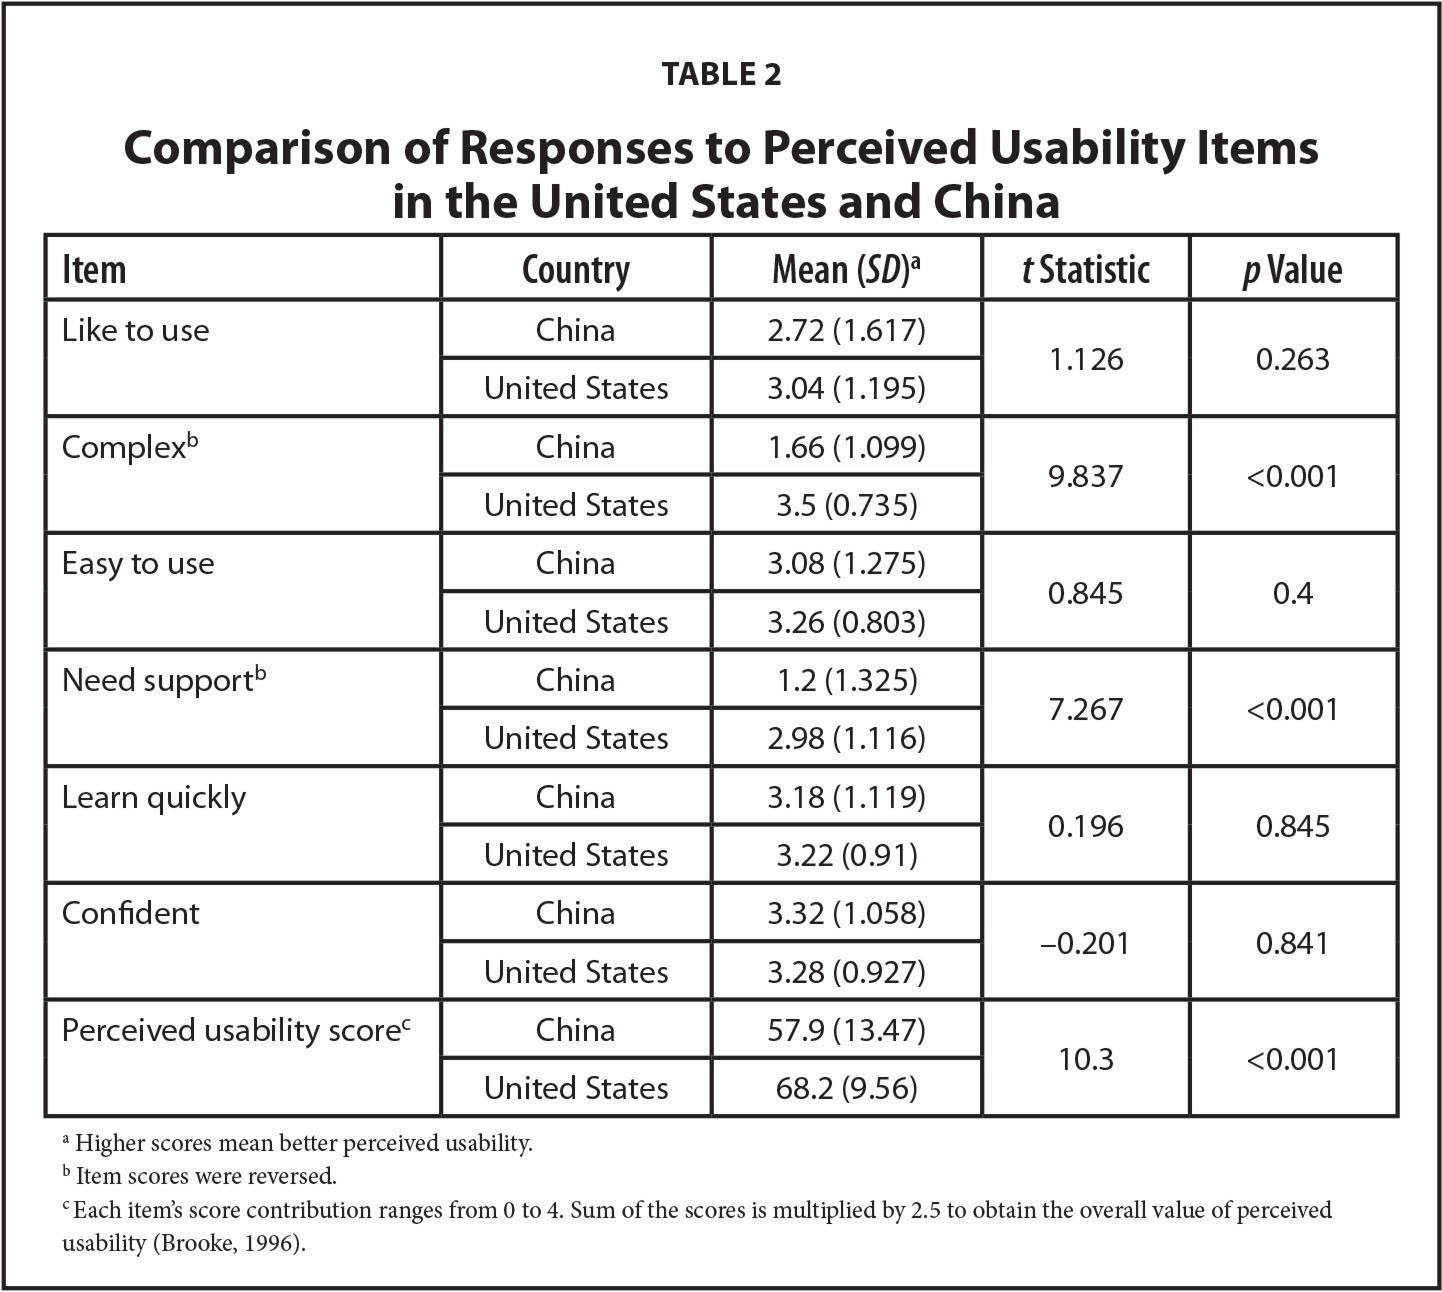 Comparison of Responses to Perceived Usability Items in the United States and China